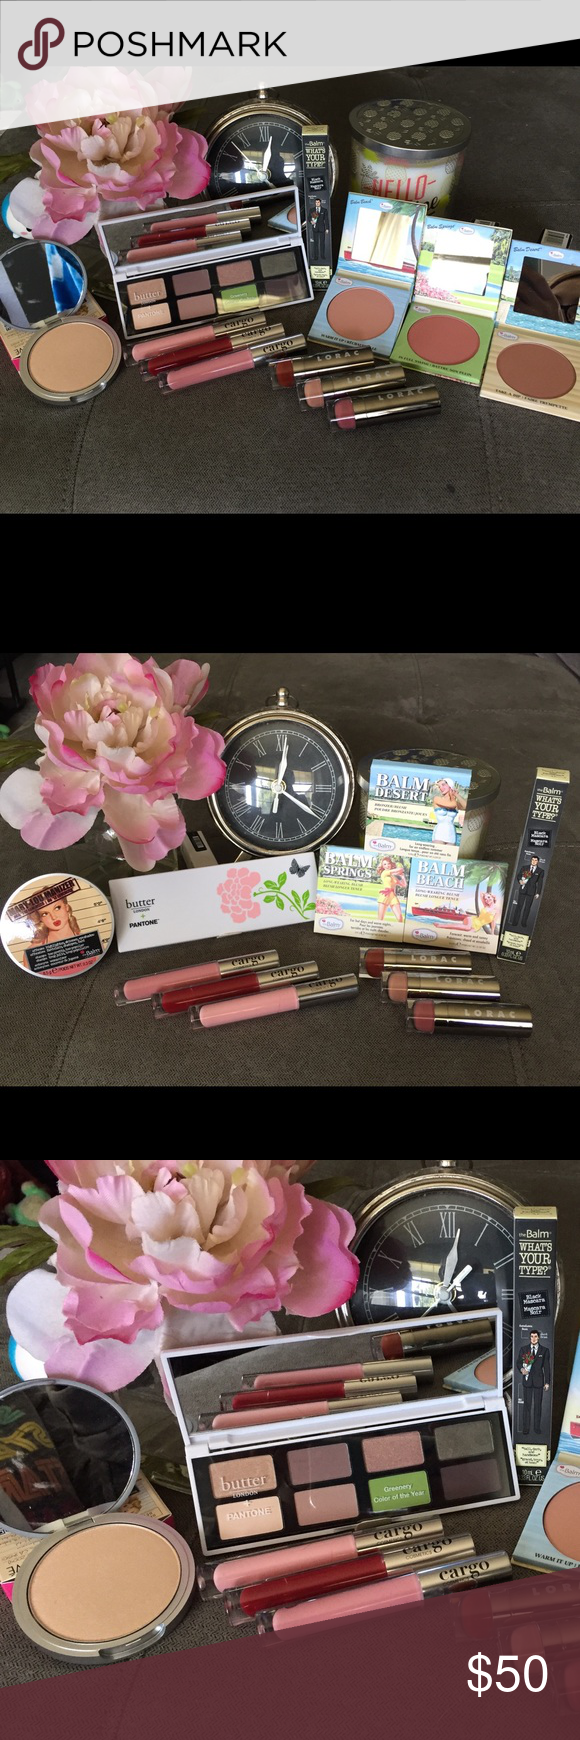 Trendsetter Collab👩🏽🎨All Items BNIB💯Authentic Trendsetter Collab👩🏽🎨TheBalm, Cargo, Lorac & Butter London & Pantone, All items Brand New BNIB💯Authentic,batch numbers shown to display authenticity. Butter London & Pantone Limited Edition Color of The Year Eyeshadow Palette.TheBalm Blushes: Balm Springs, Balm Beach & Balm Desert & Mary-Lou Luminizer, What's Your Type Black Mascara. Cargo Lipglosses: Anguilla,Fresno & Prague. Lorac Lipsticks:Hipster,Granny & Centerfold. Benefit Makeup…